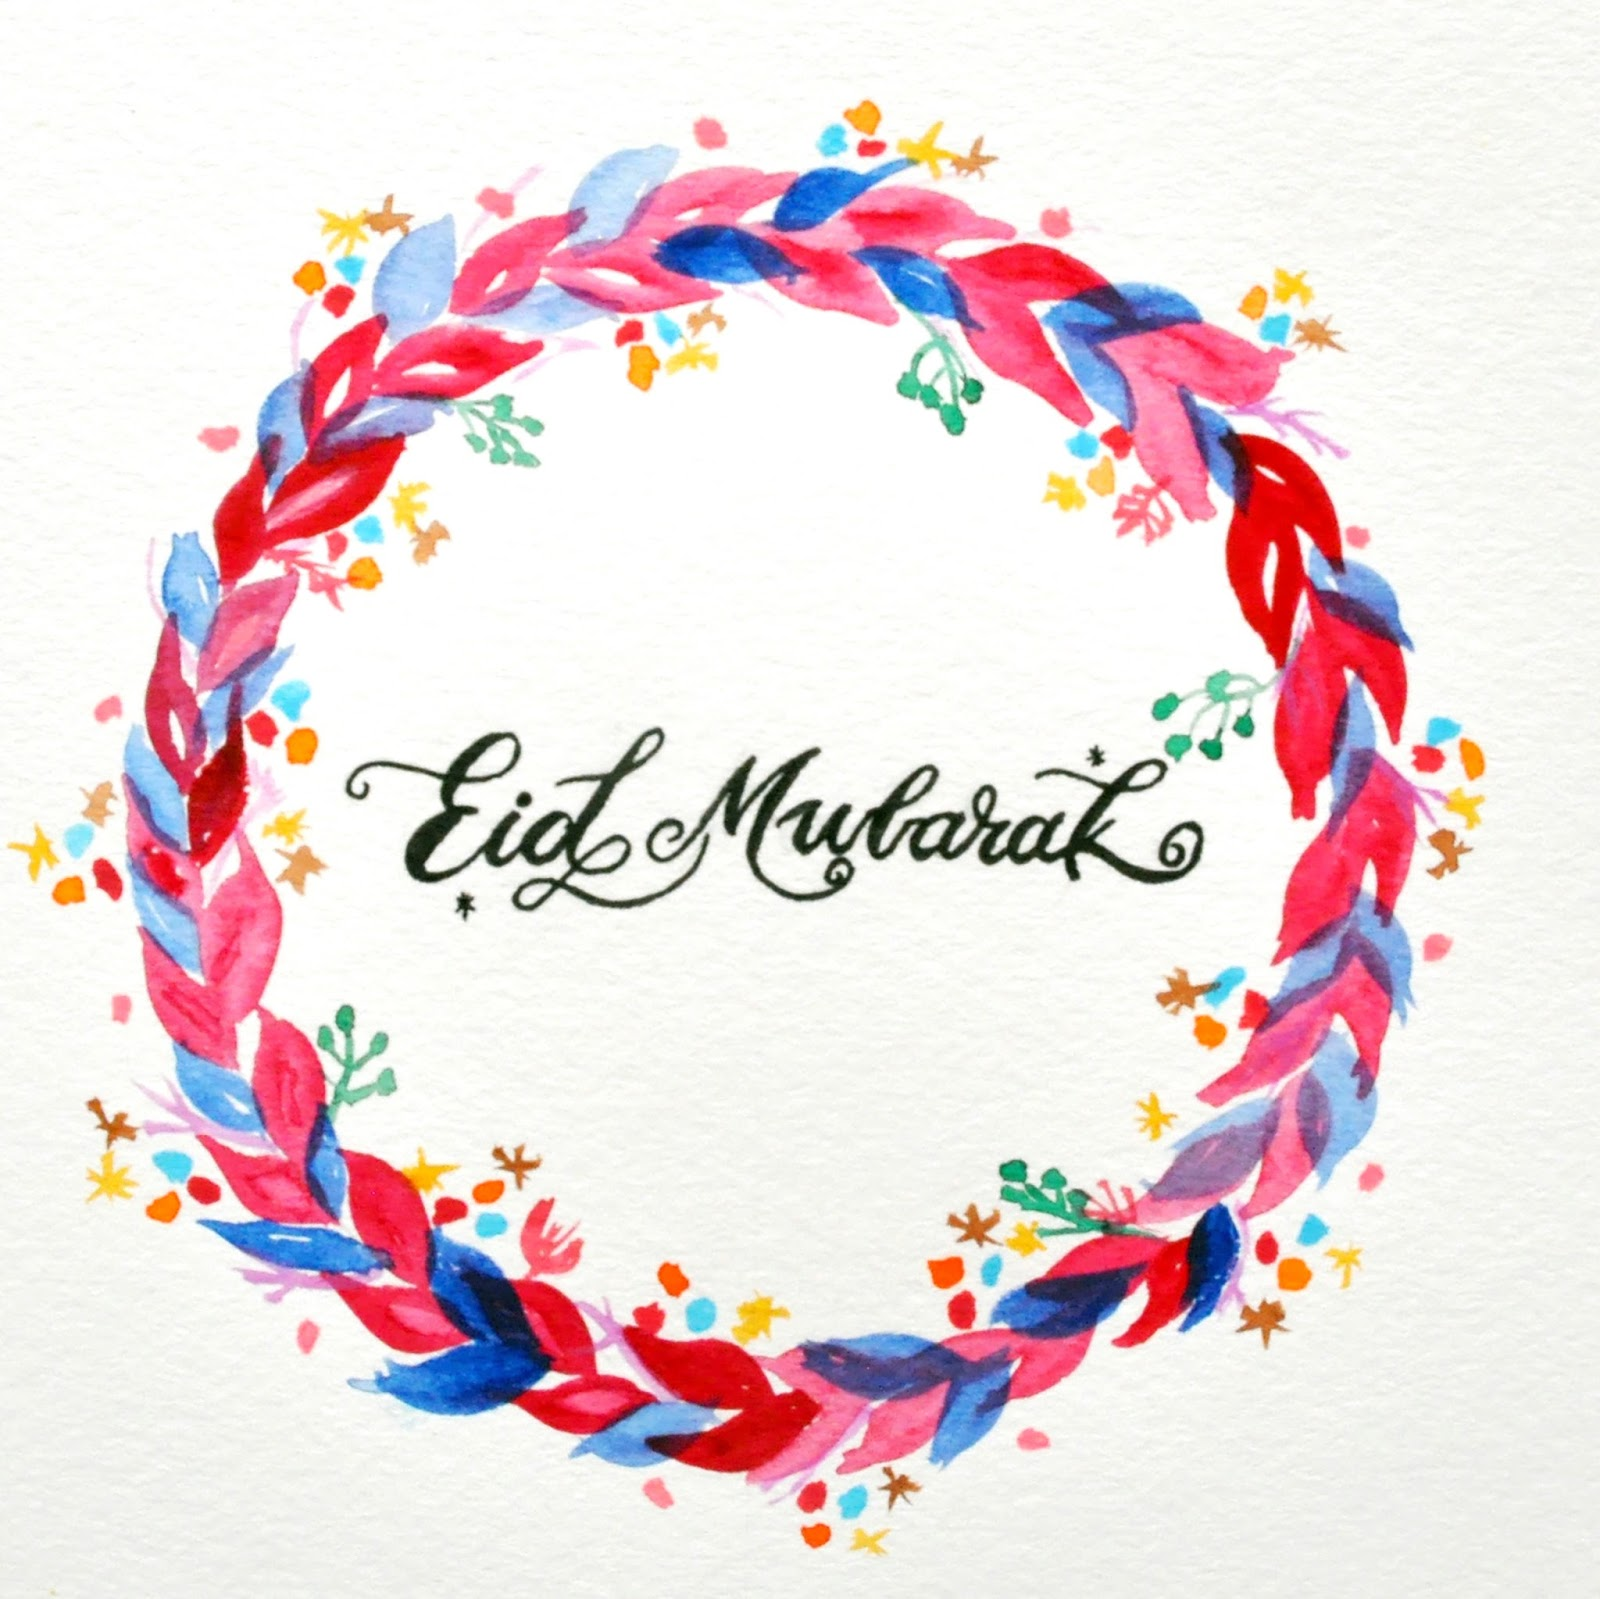 Eid ul Adha Mubarak Colorful Design